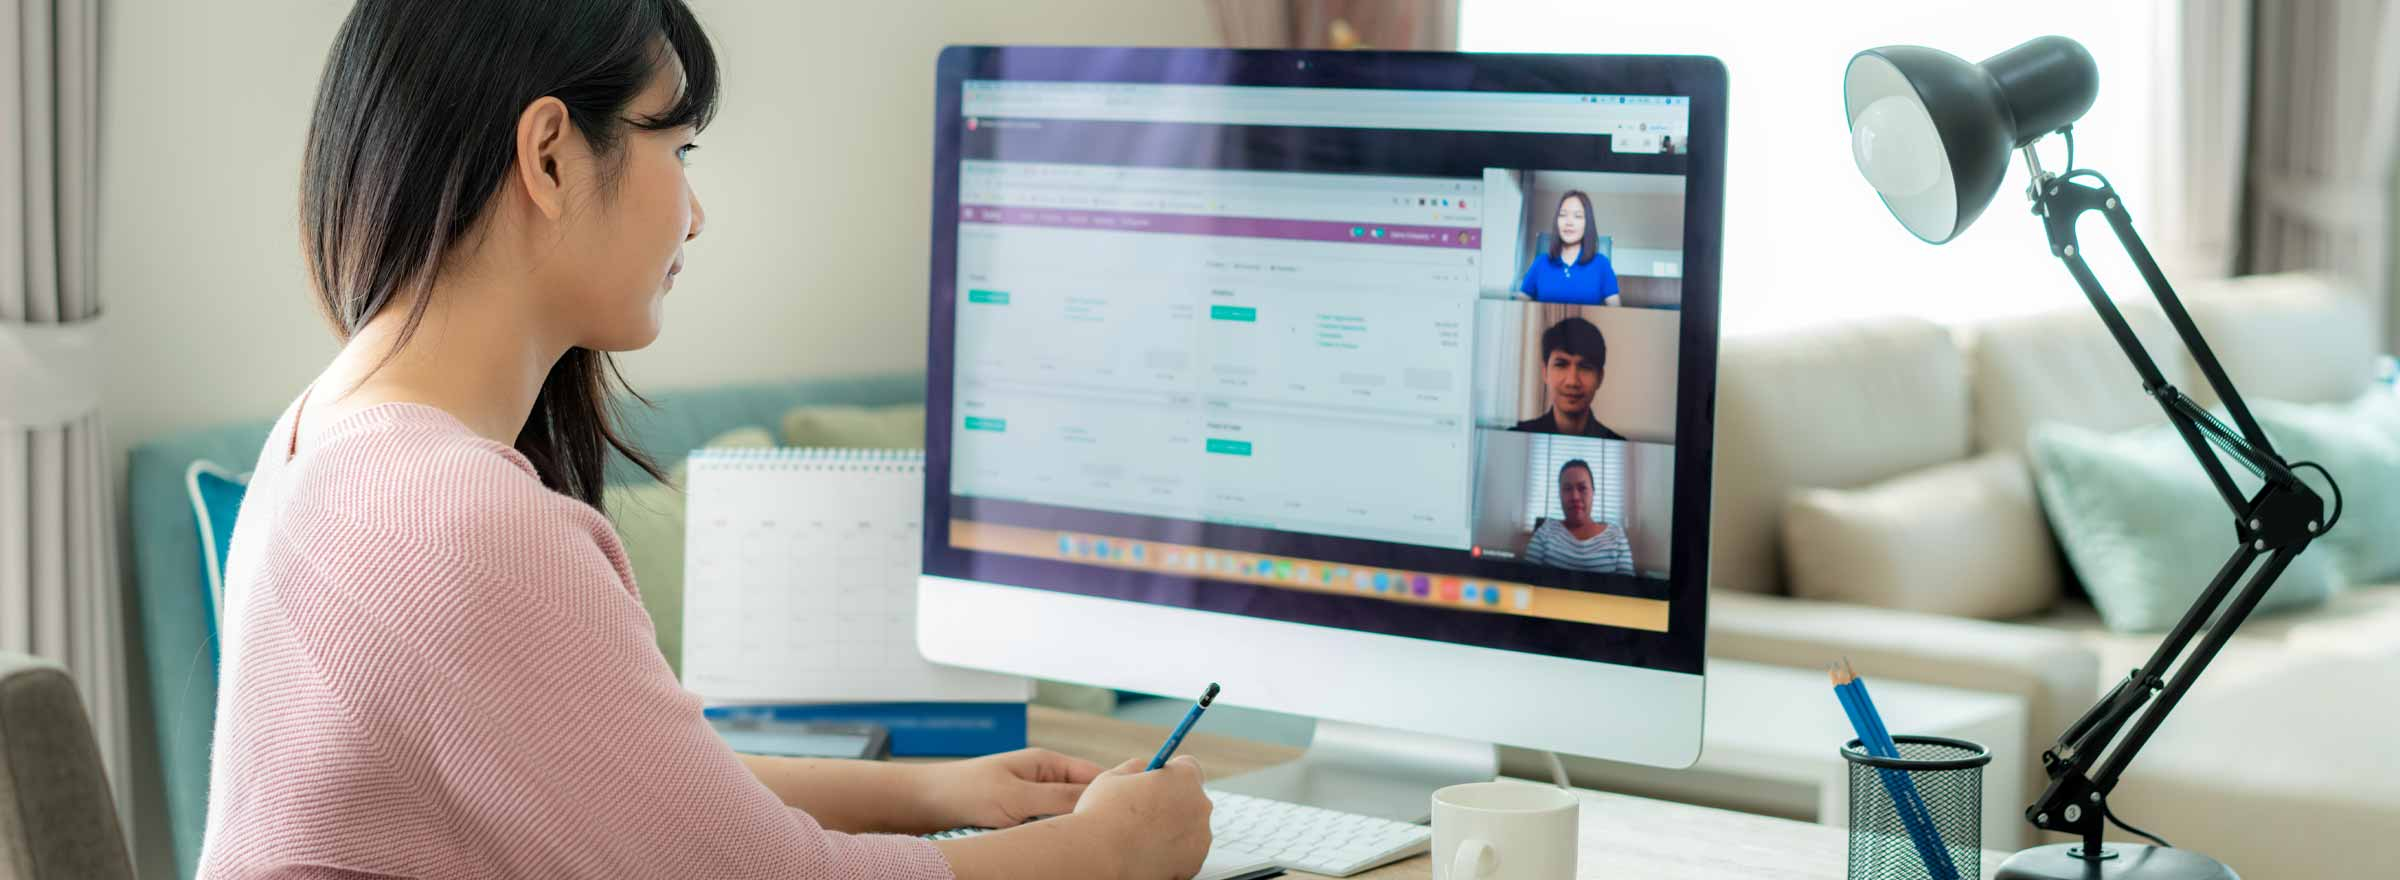 woman on a video call with three other people